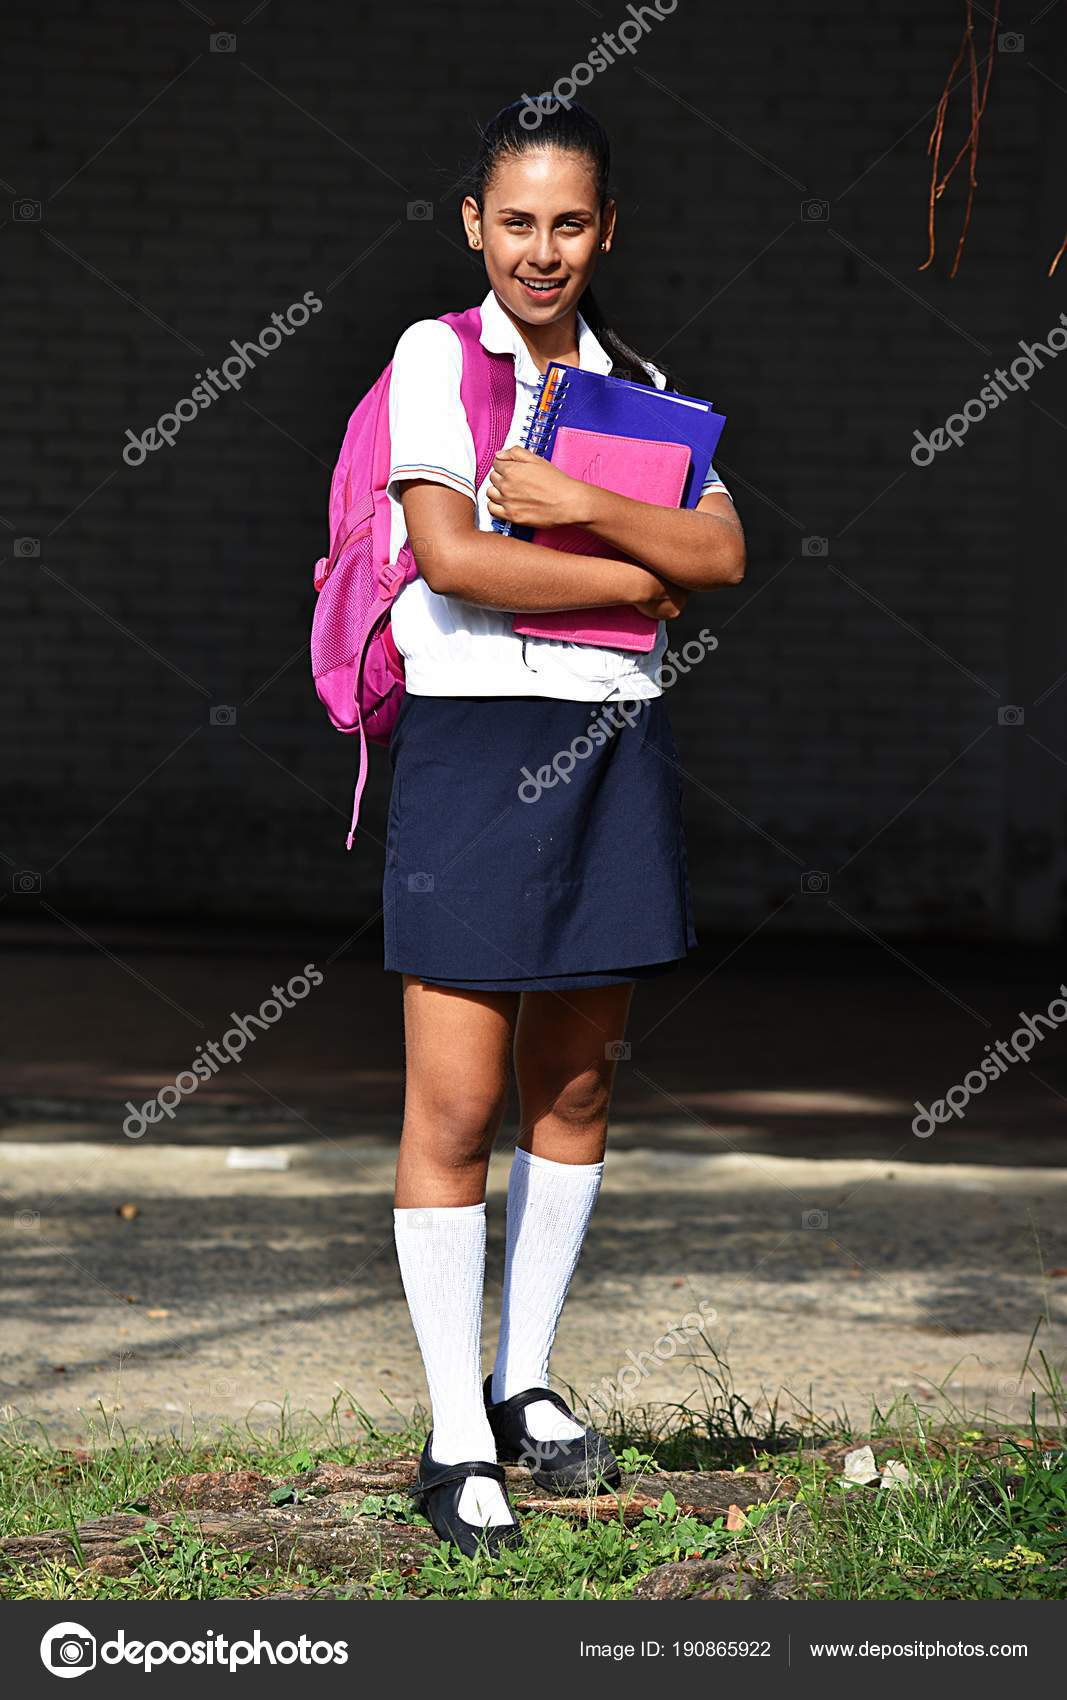 Think, that Pics of young girls in school uniform